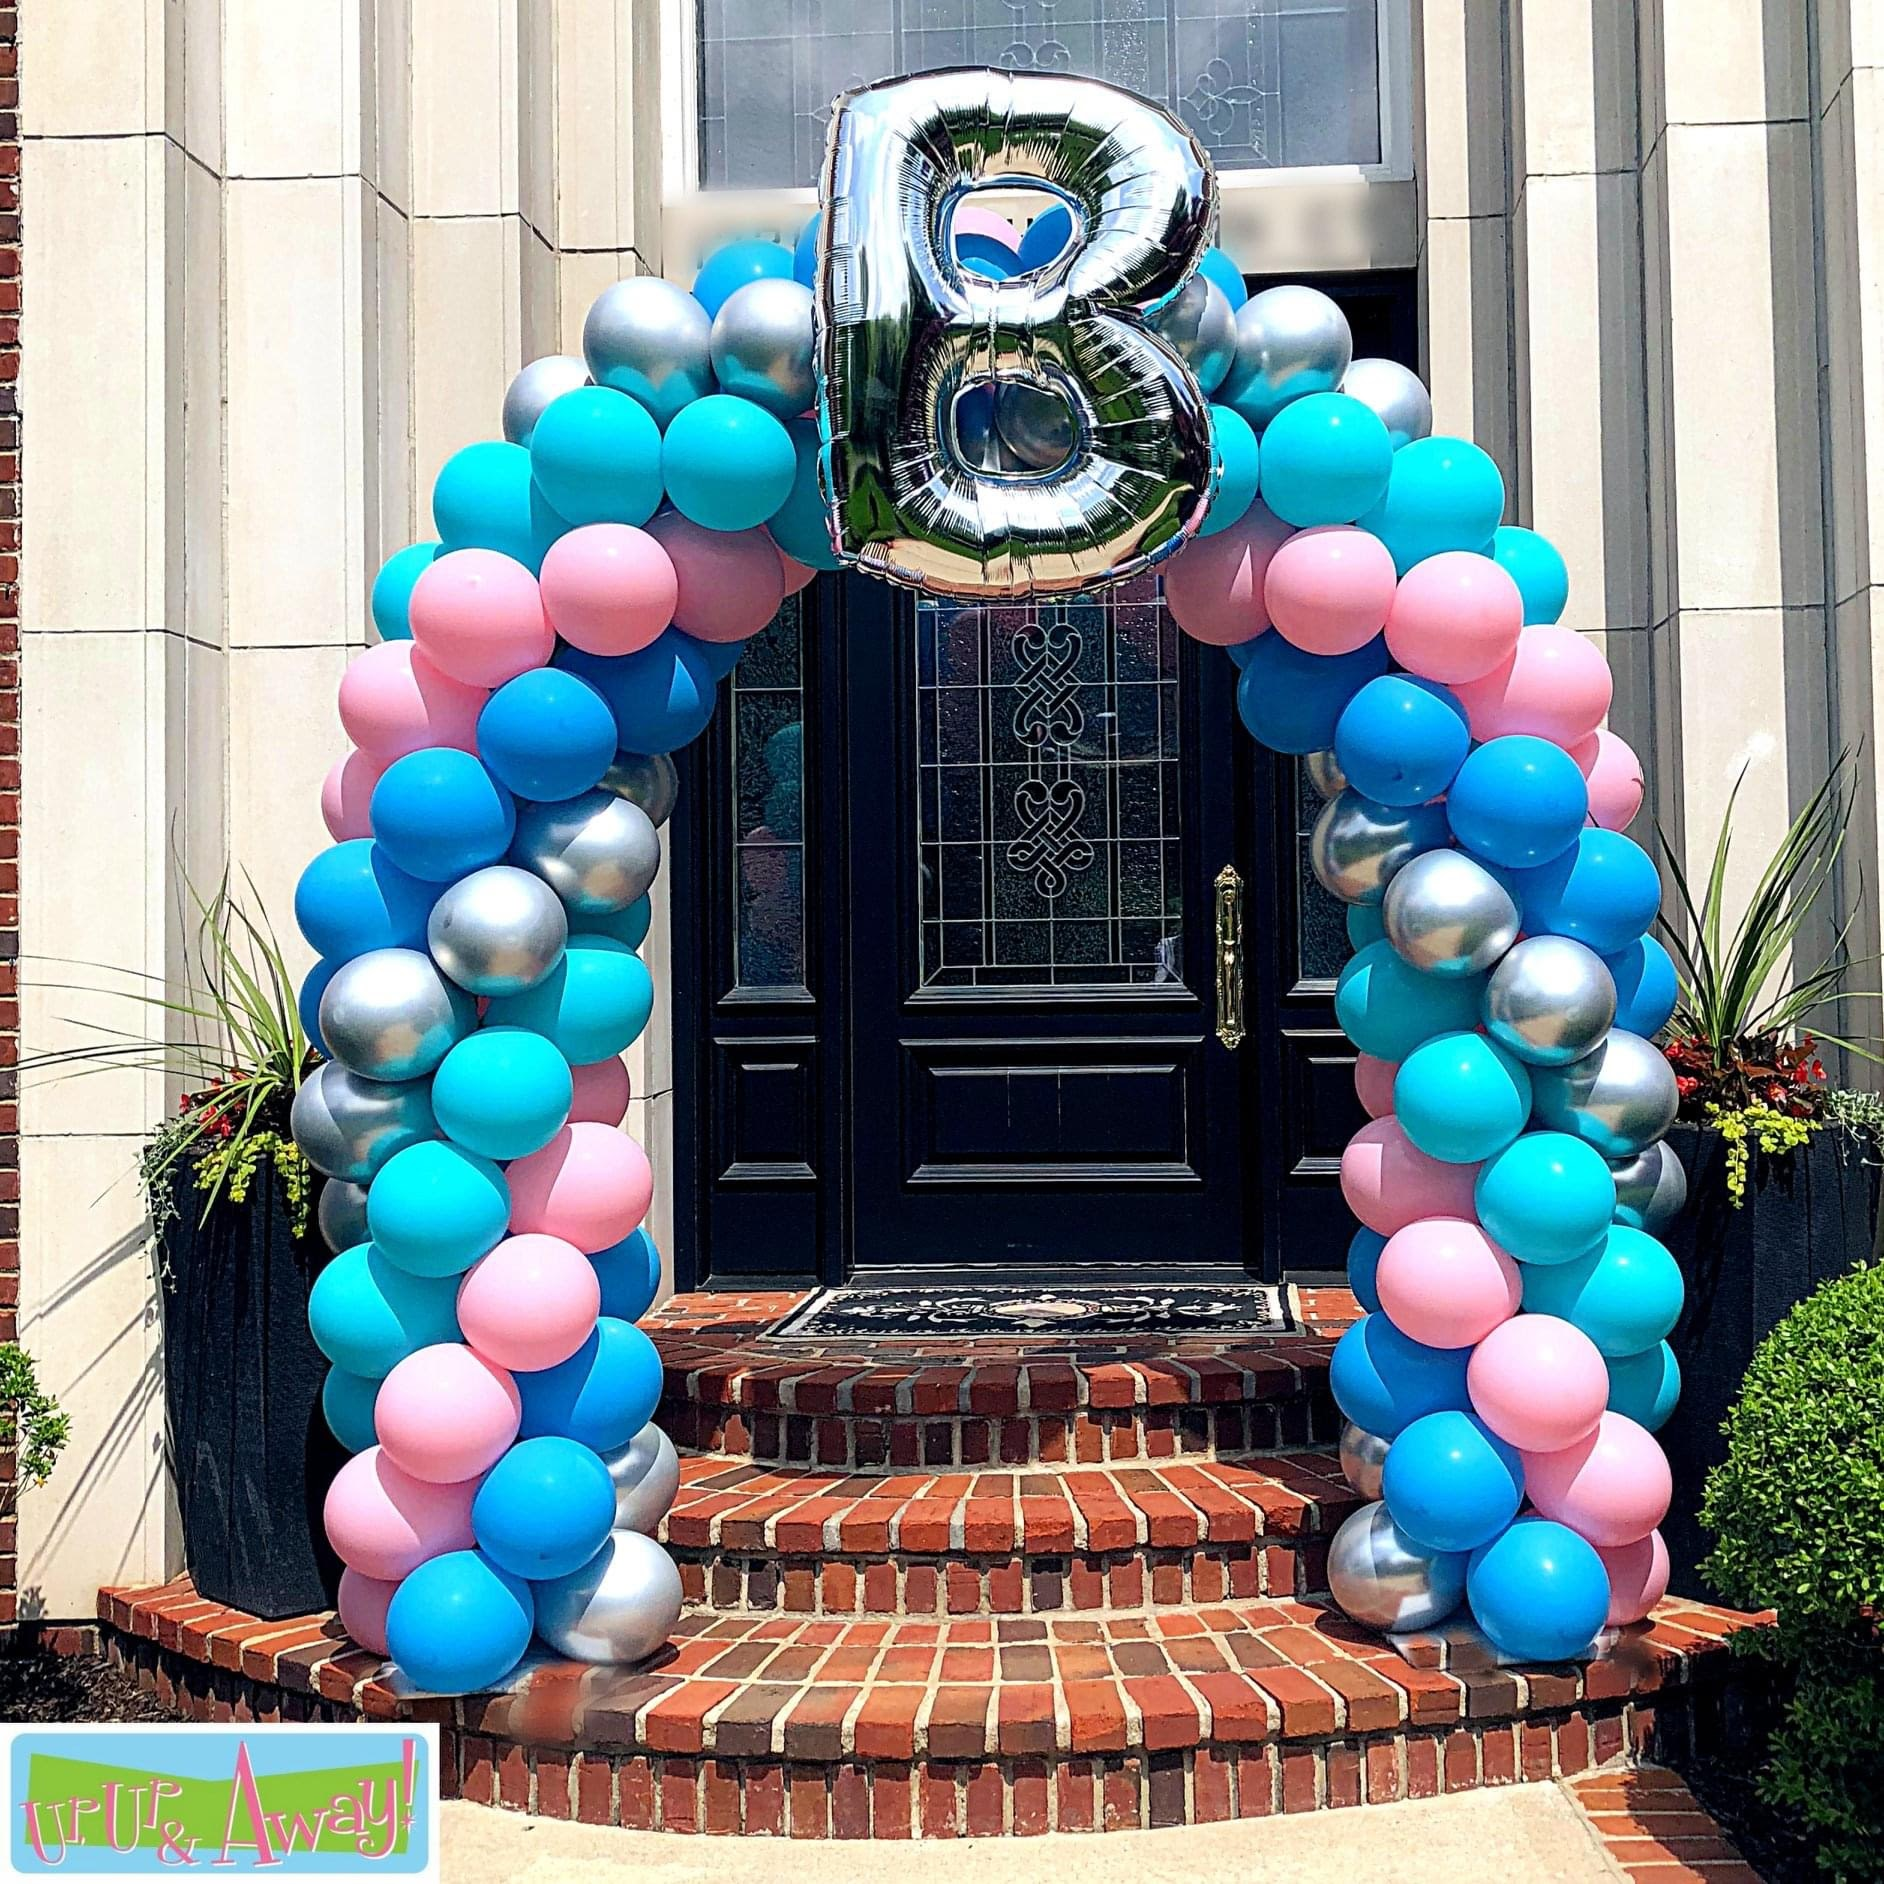 Monogram Arch | Up, Up & Away! Balloons